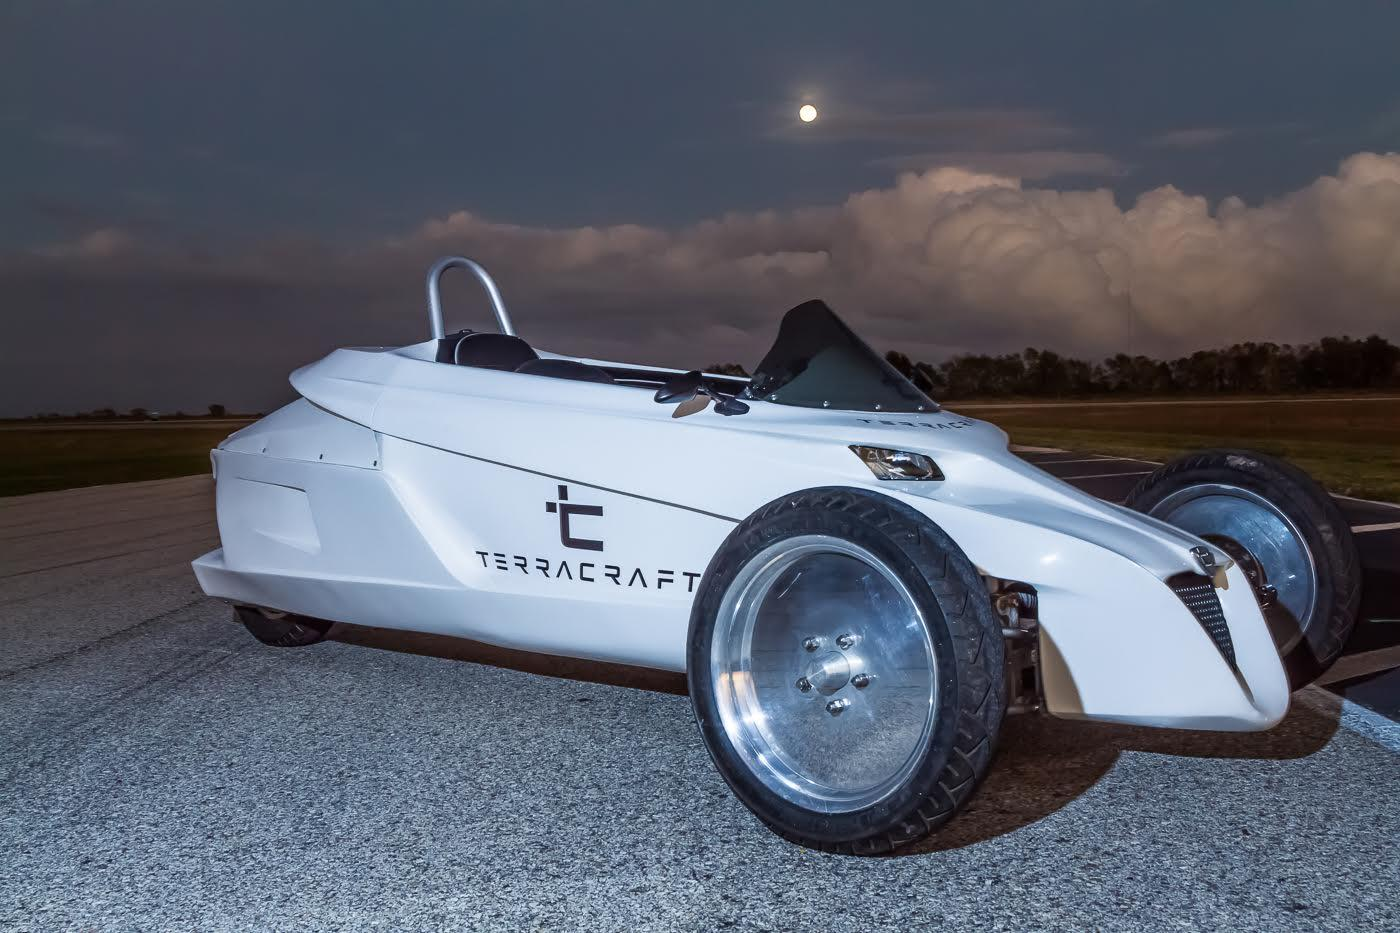 The Terracraft SuperTrike is an auto-tilting three-wheeler with roll-bar safety system